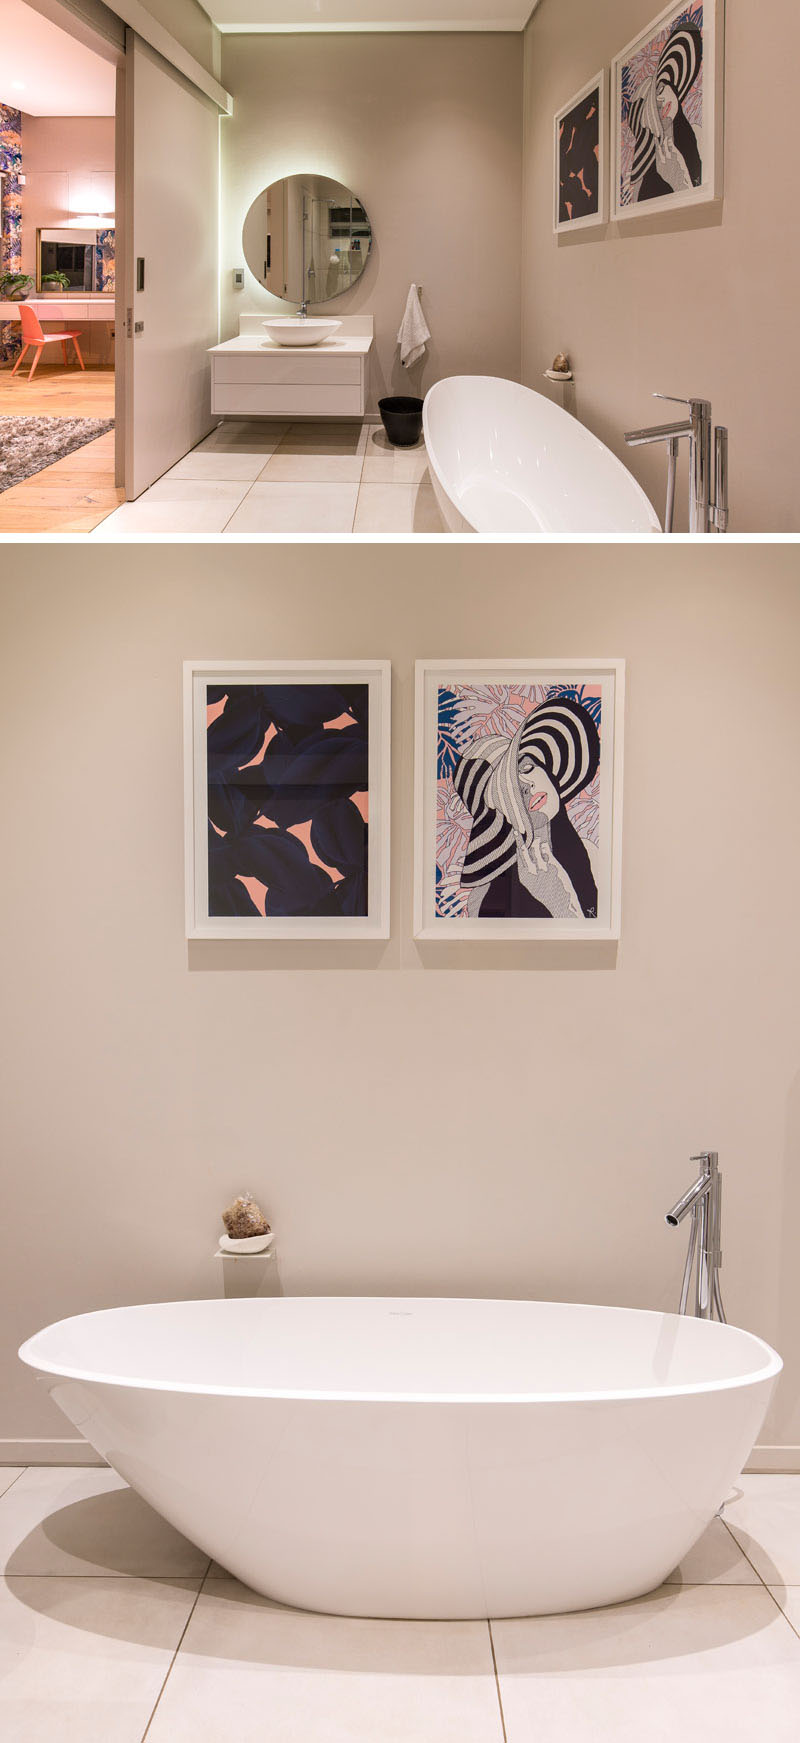 The freestanding bathtub in this modern ensuite bathroom sits below two white framed graphic images that match the bright wallpaper in the bedroom. A round backlit mirror provides extra light in this space and sits above a simple white vanity.